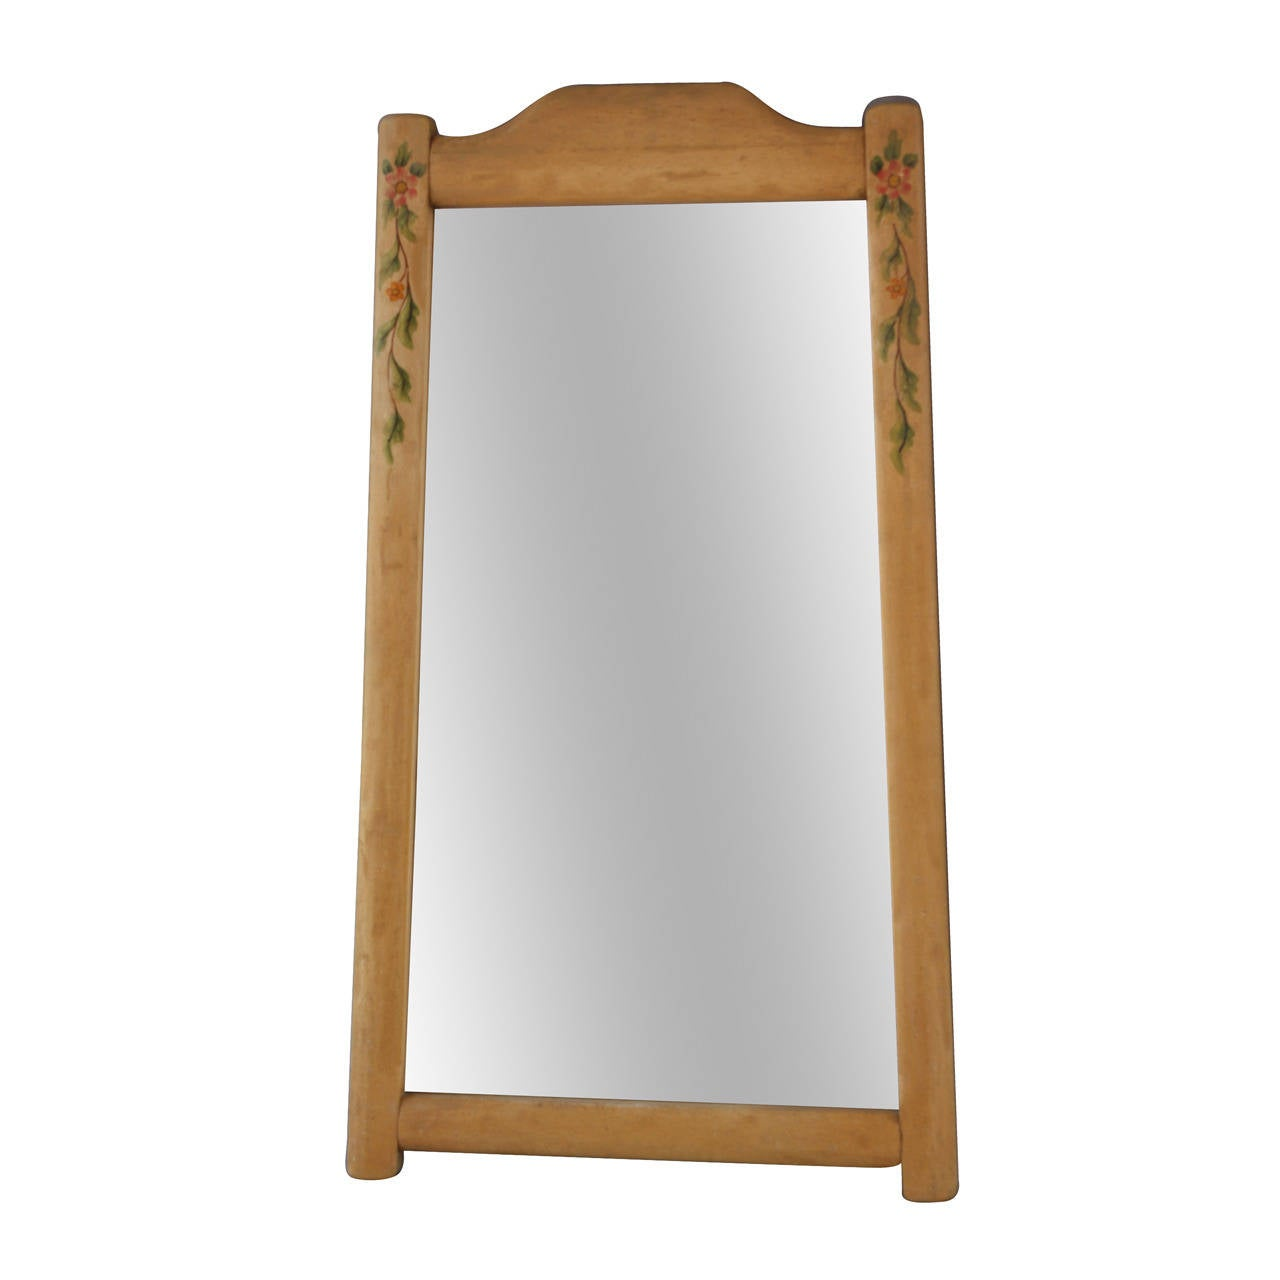 Tall monterey period mirror for sale at 1stdibs for Tall mirrors for sale